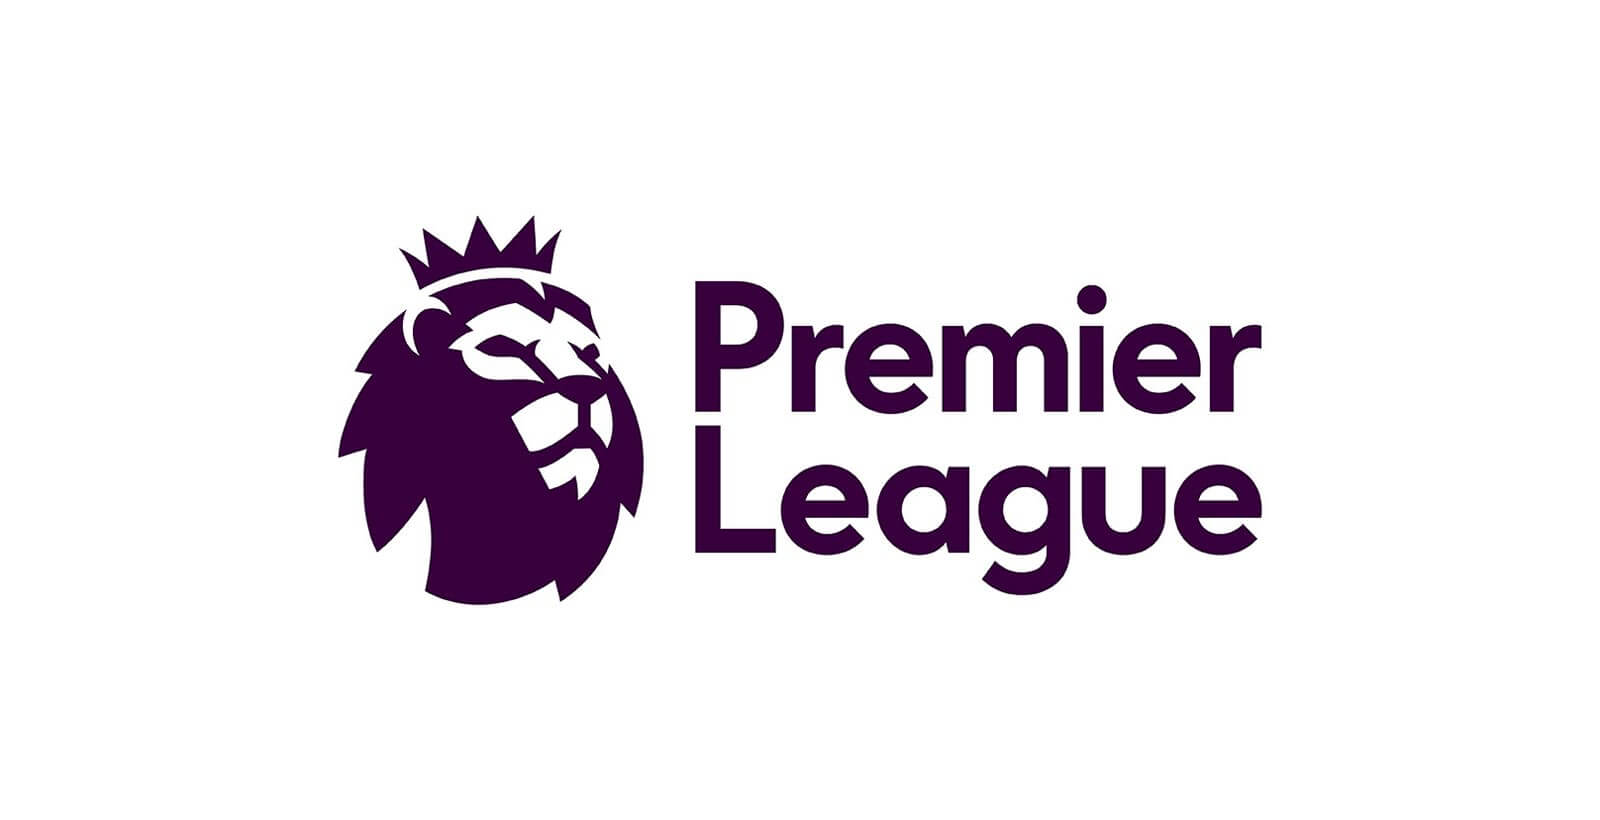 Billets Championnat de football d'Angleterre Premier League